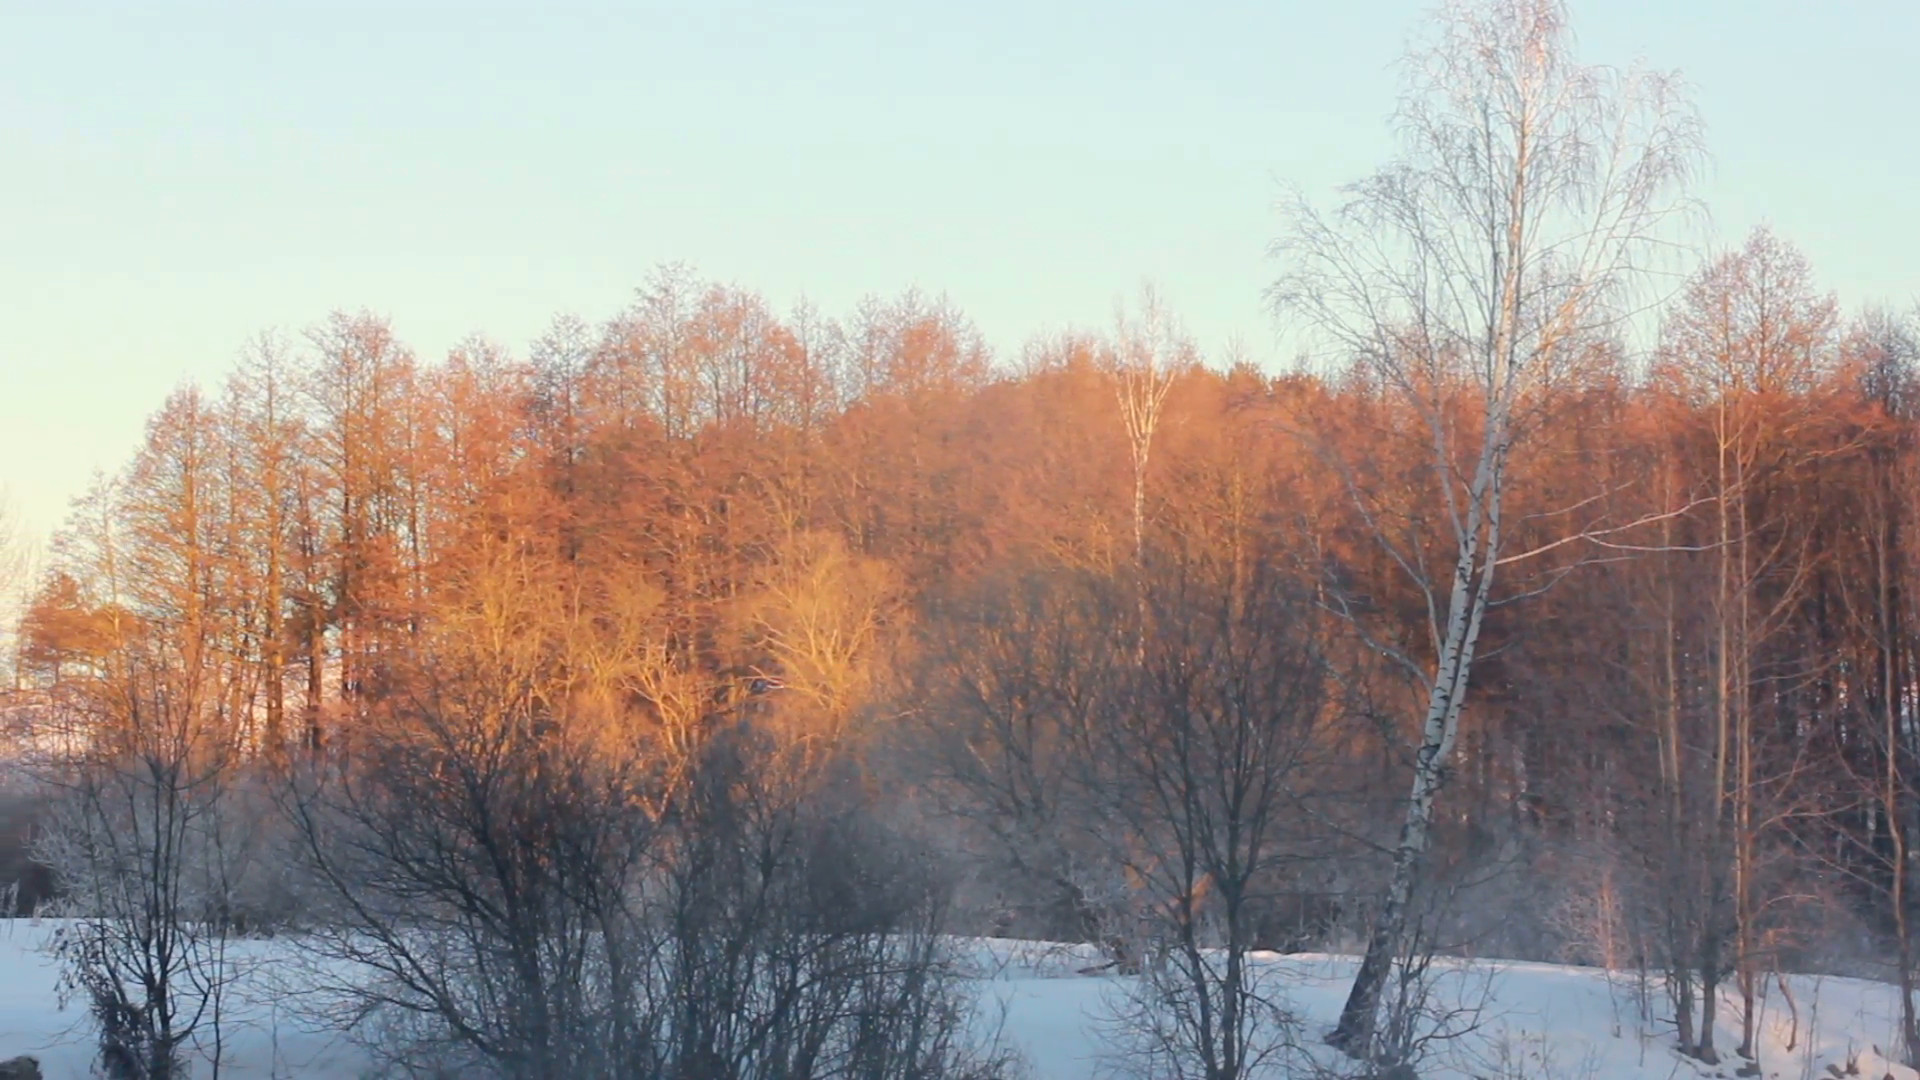 1920x1080 Winter wonderland. Birch tree on winter forest background. Panorama of  winter forest landscape. Orange sunlight on winter trees. Bright sun rays  cover snowy ...